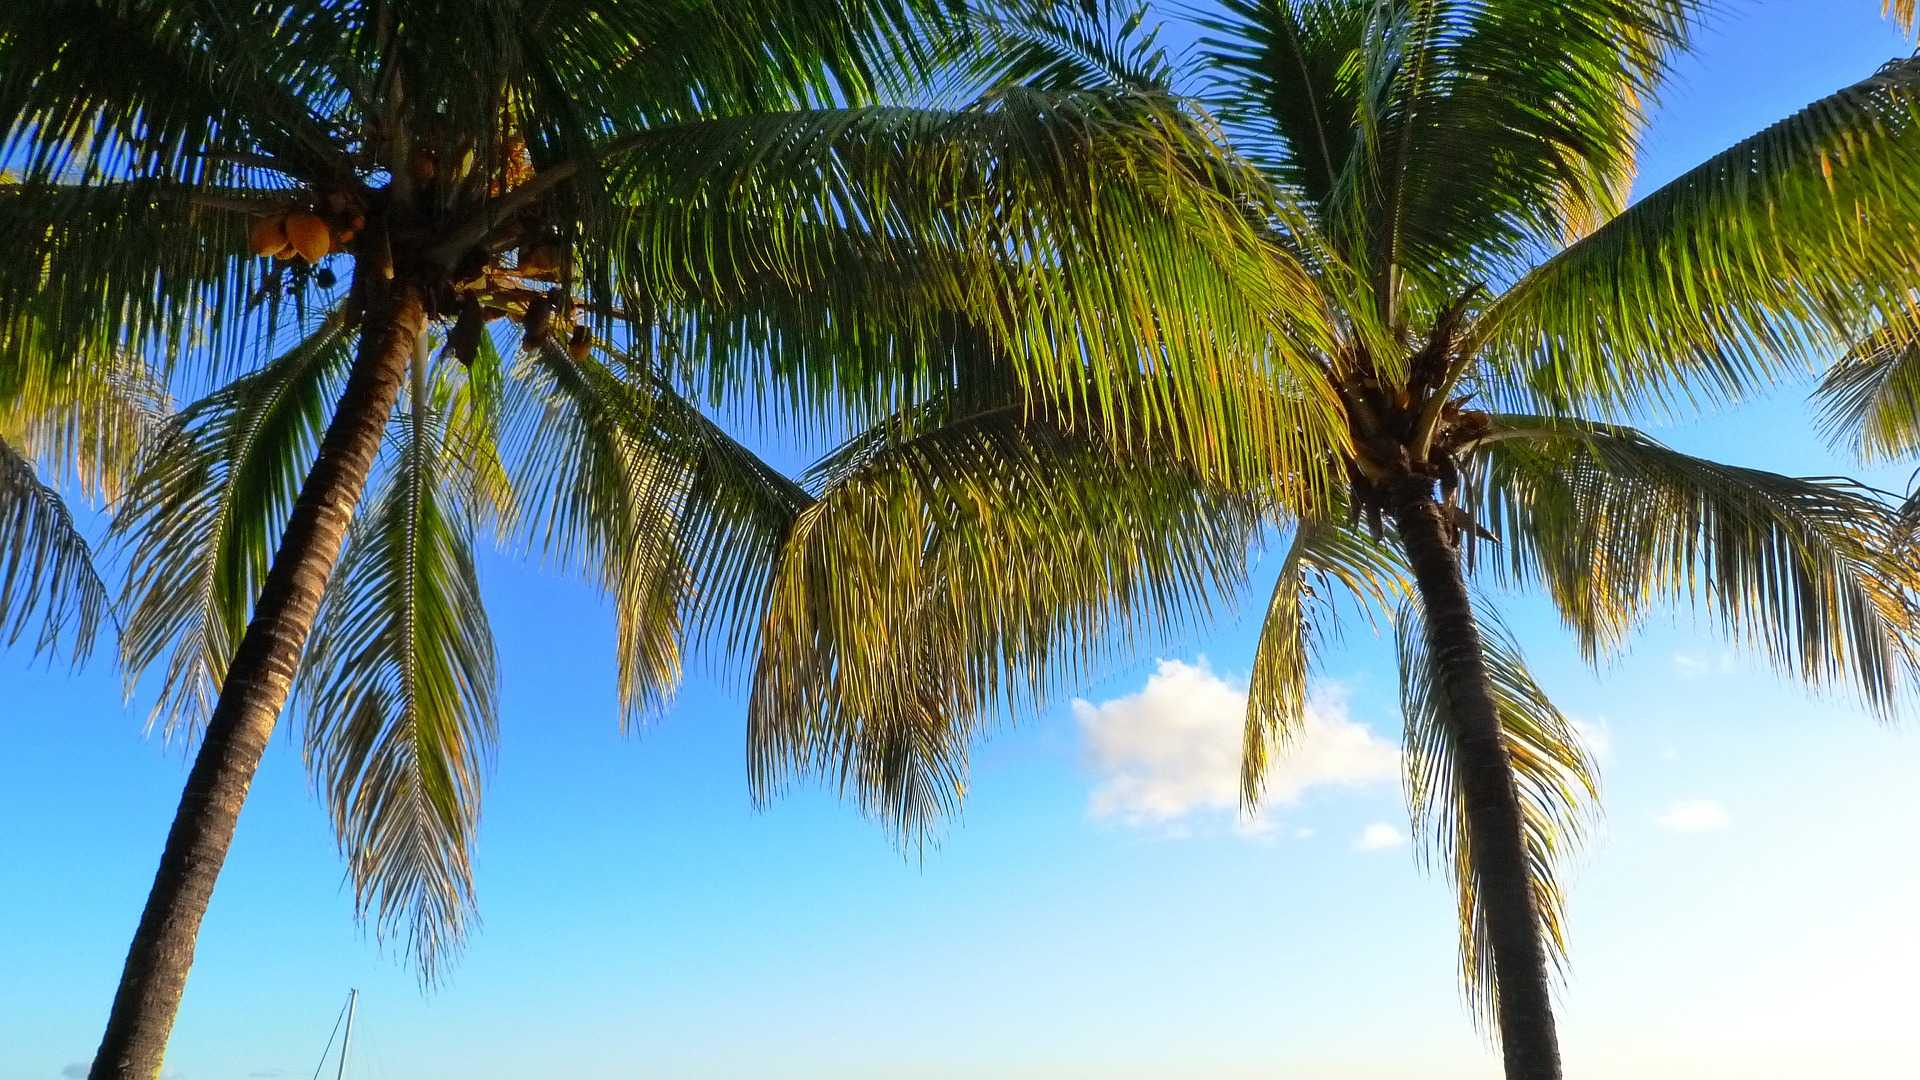 original_palm-trees-630089_1920